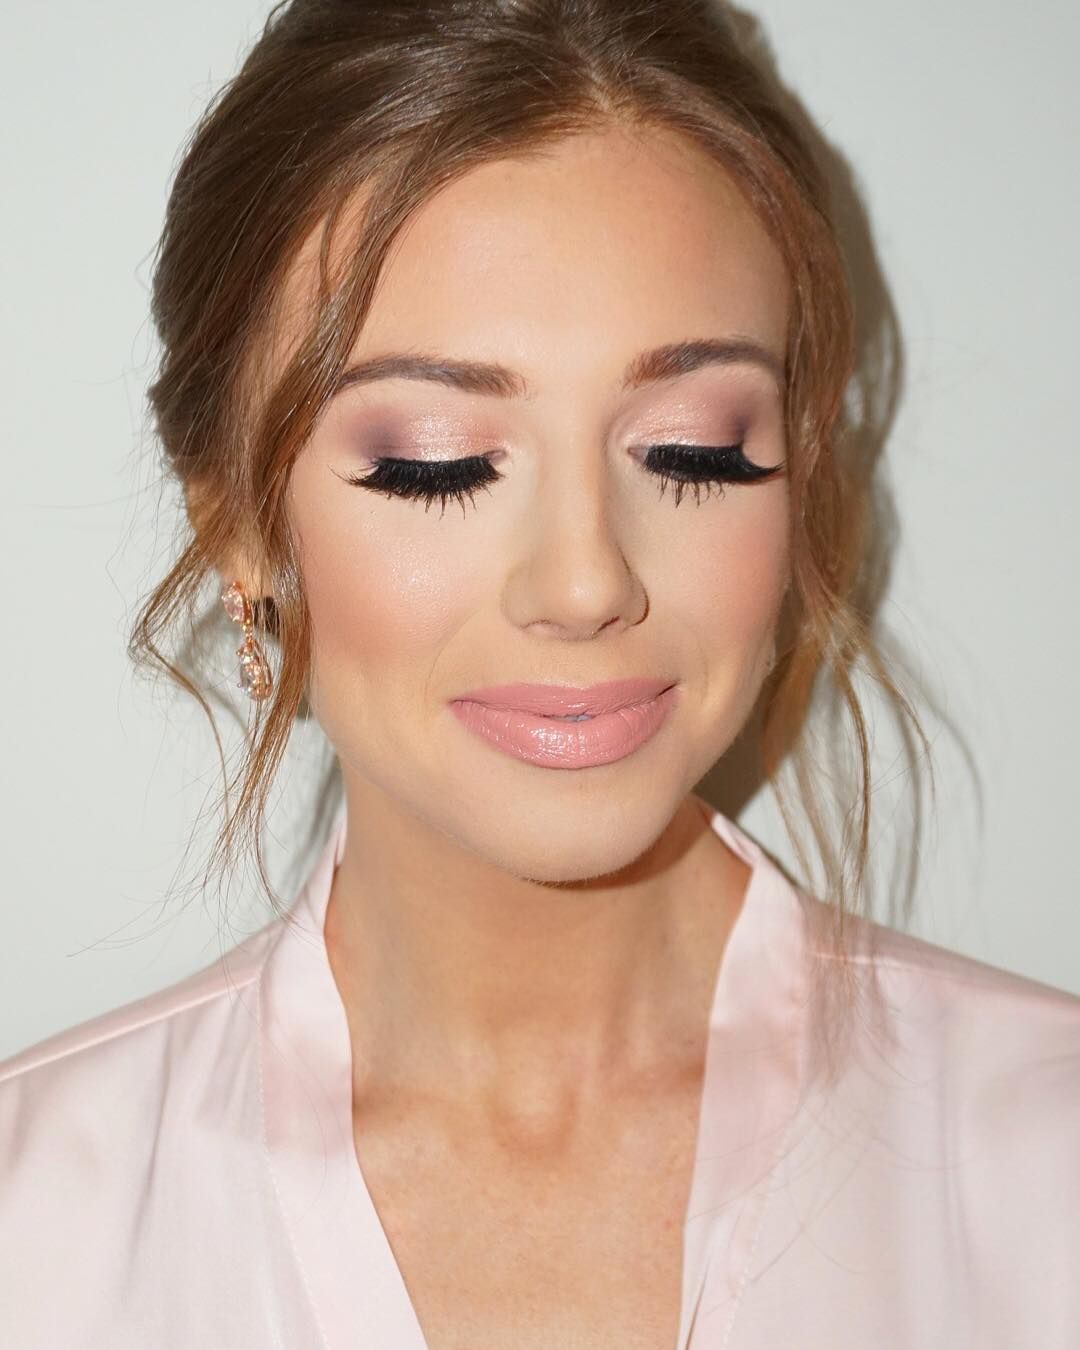 One of my fav looks on one of my fav brides. I get so many